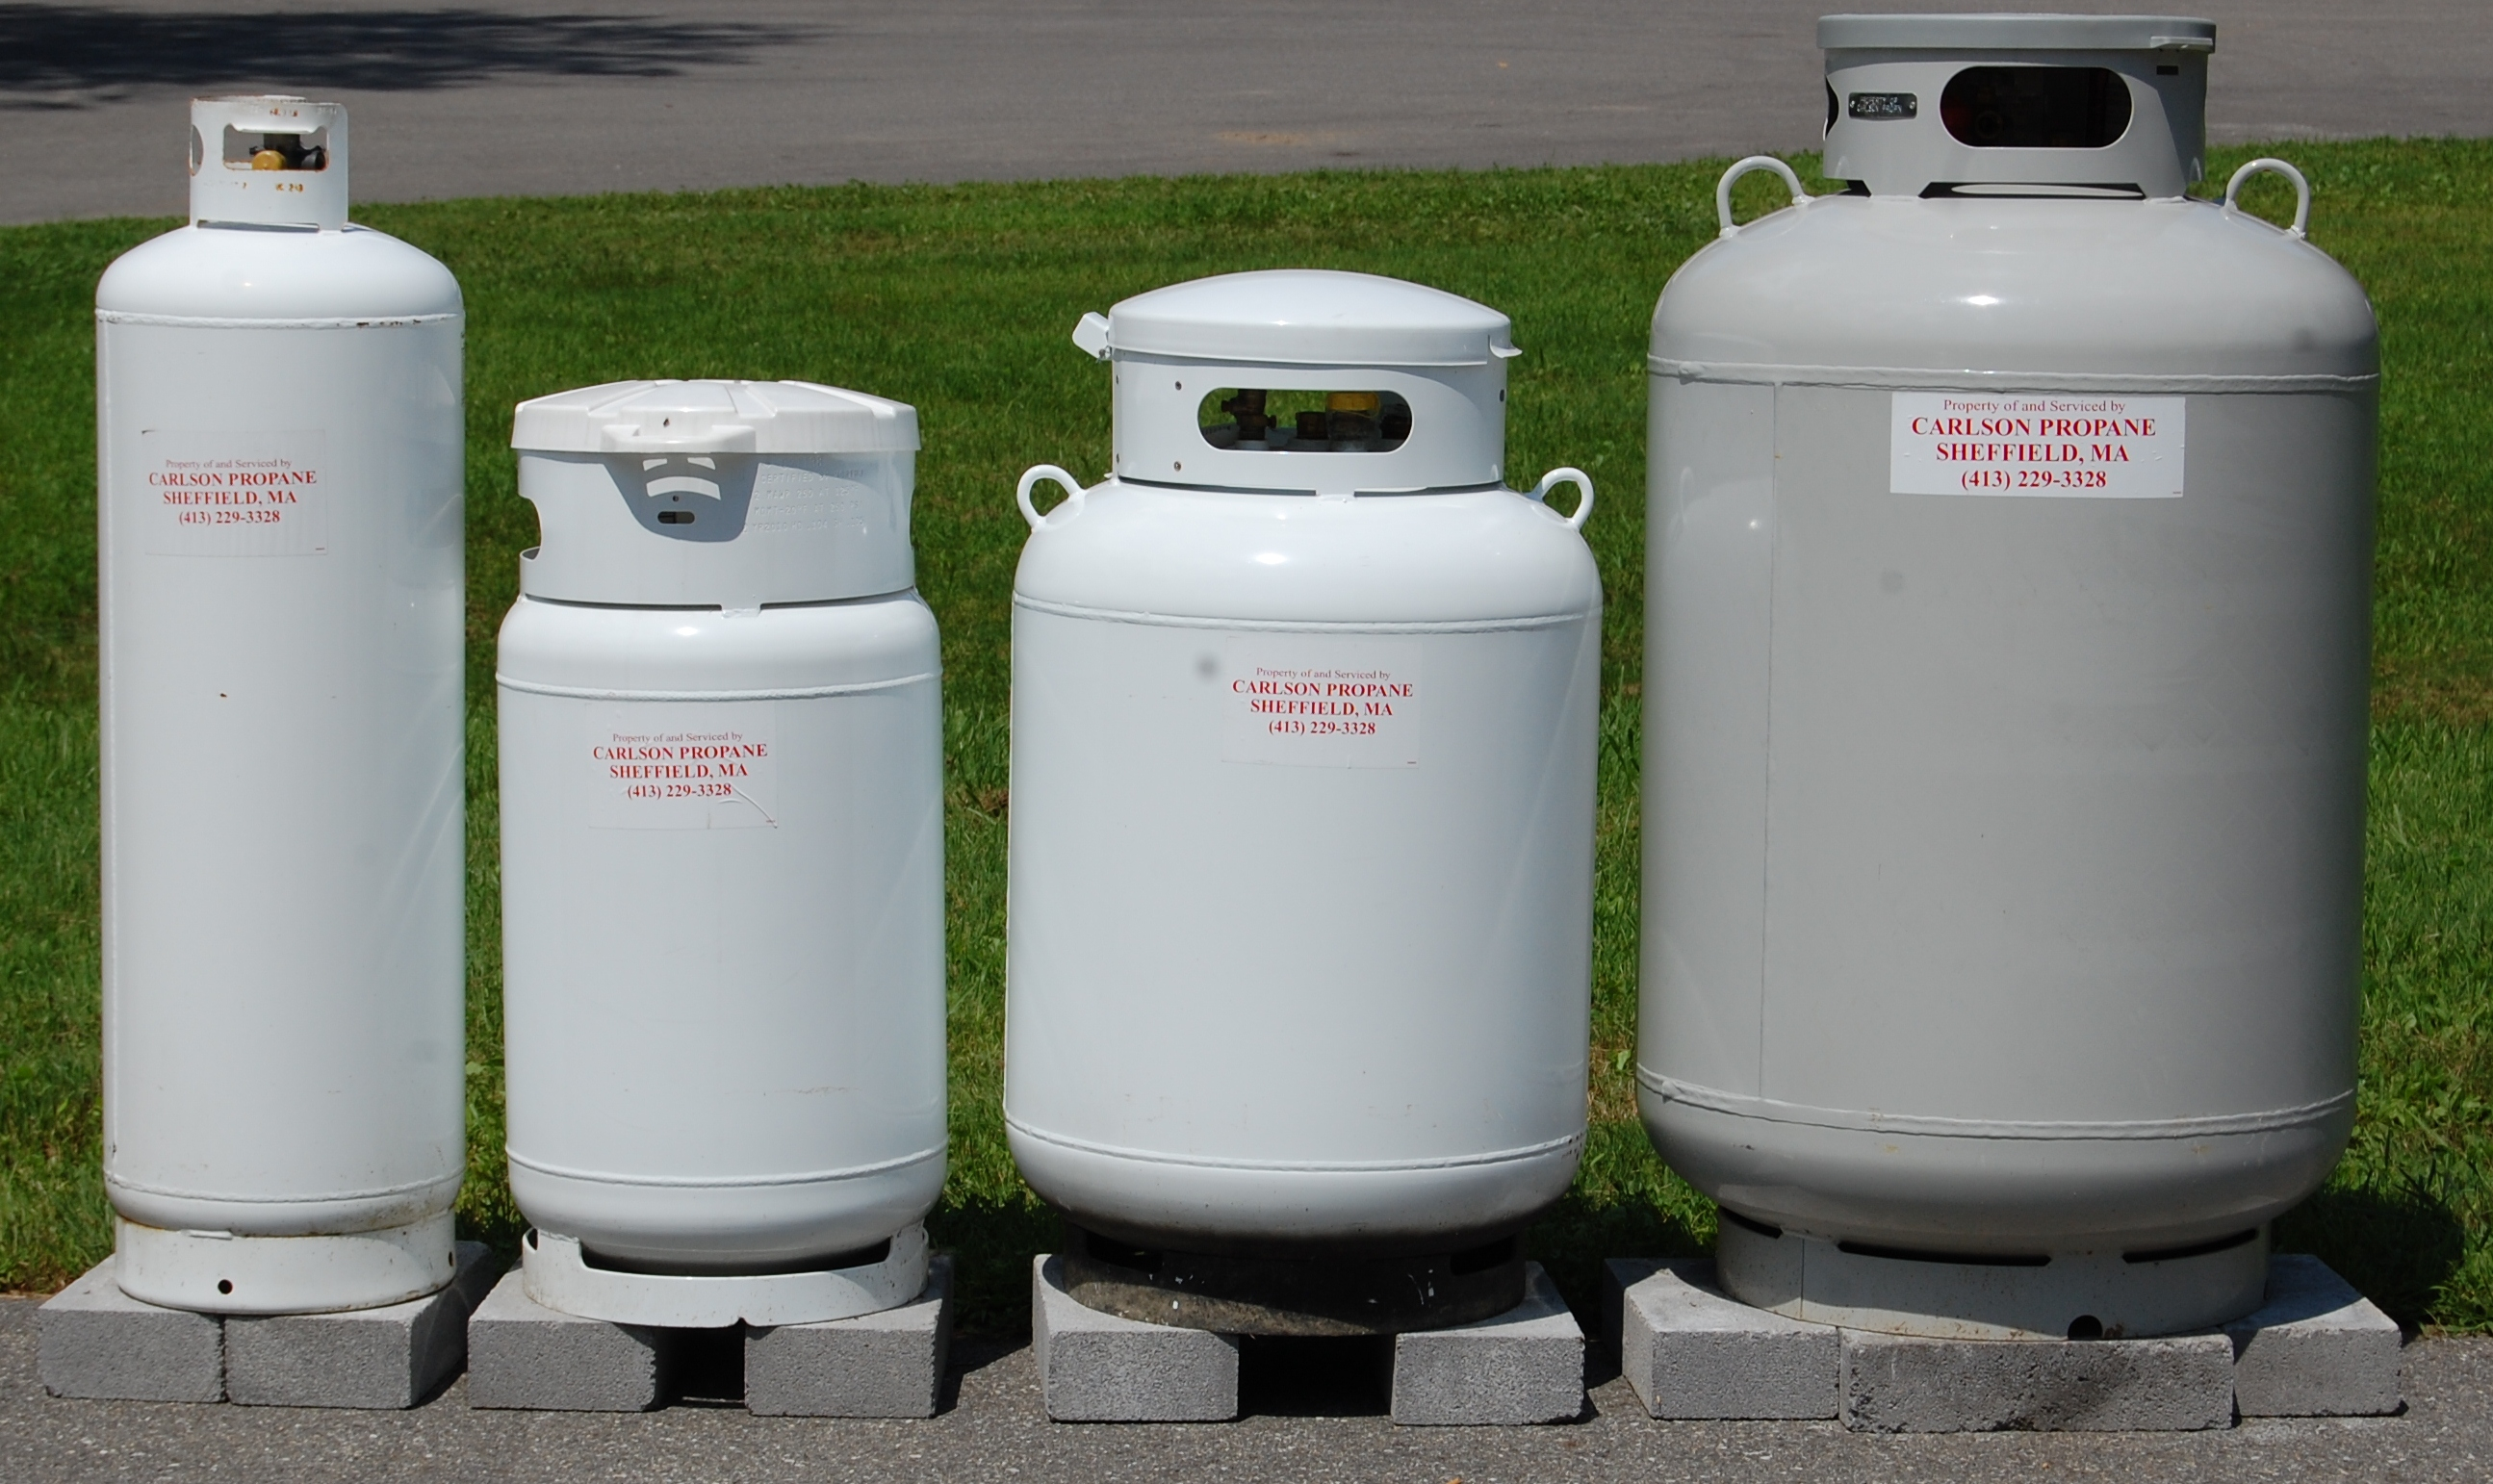 From left to right – 100# tank, capacity 23 gallons